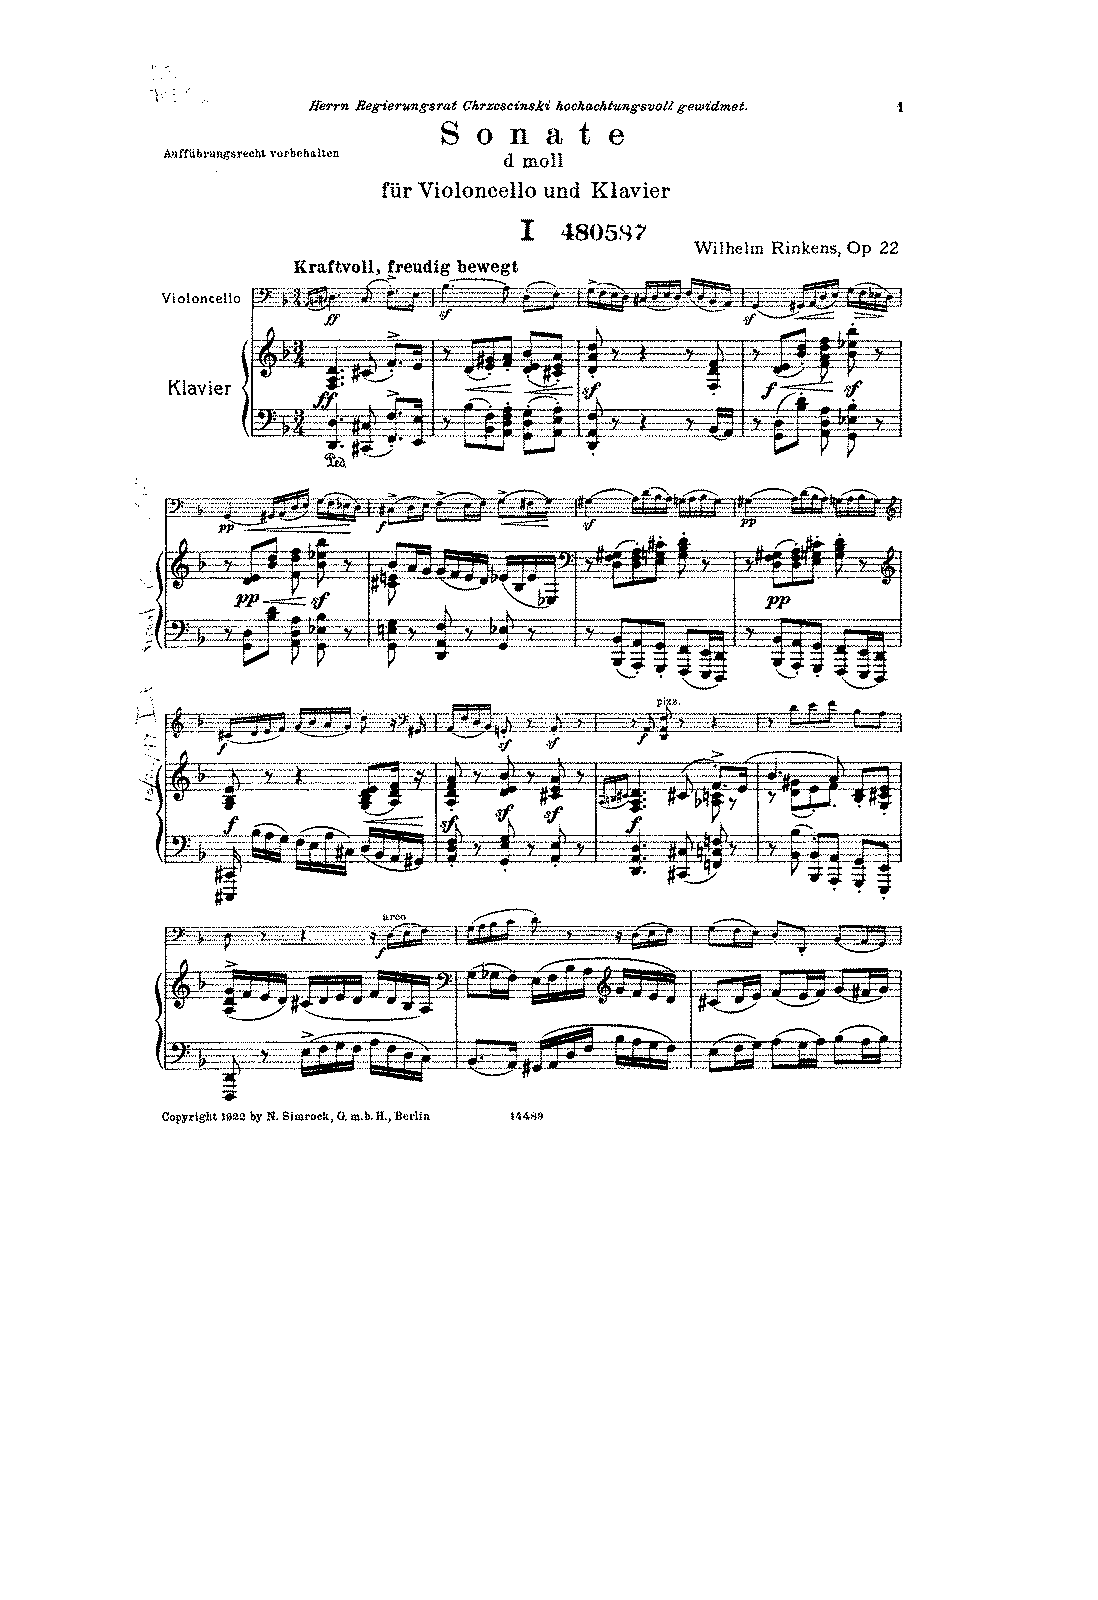 PMLP134945-Rinkens - Cello Sonate in D minor Op22 score.pdf